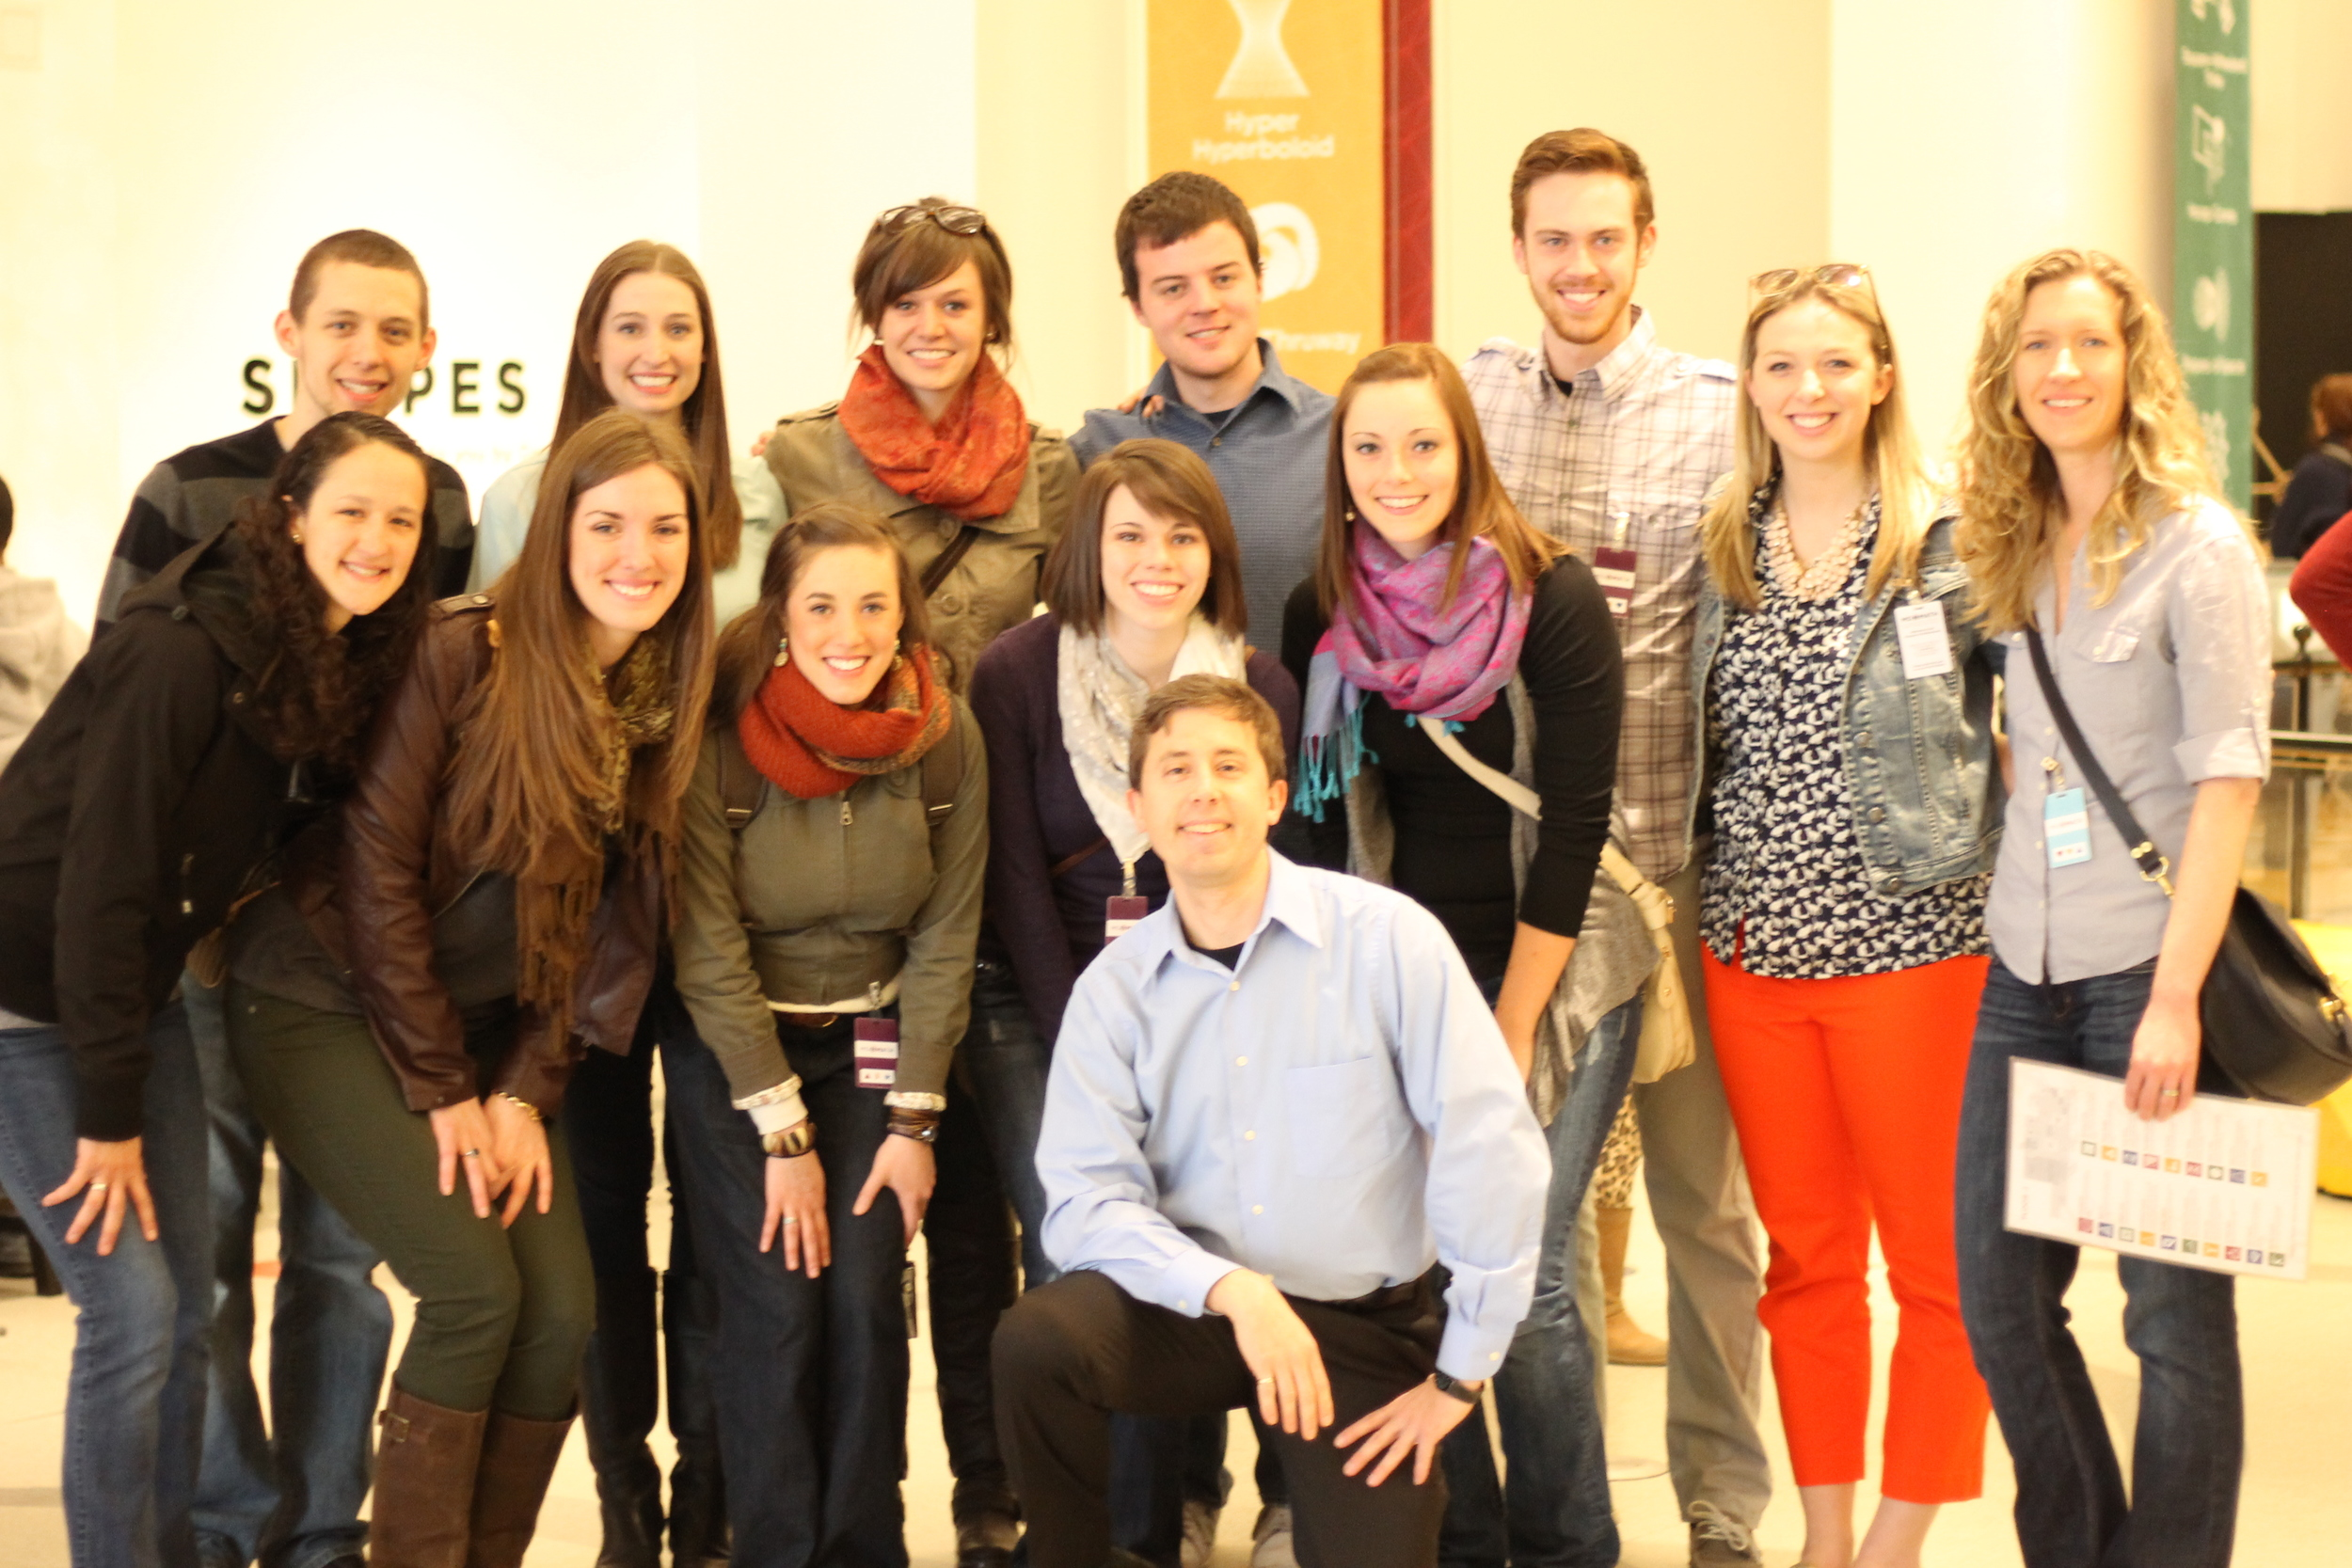 MSU secondary mathematics interns at the Museum of Mathematics in NYC, with the founder Glen Whitney